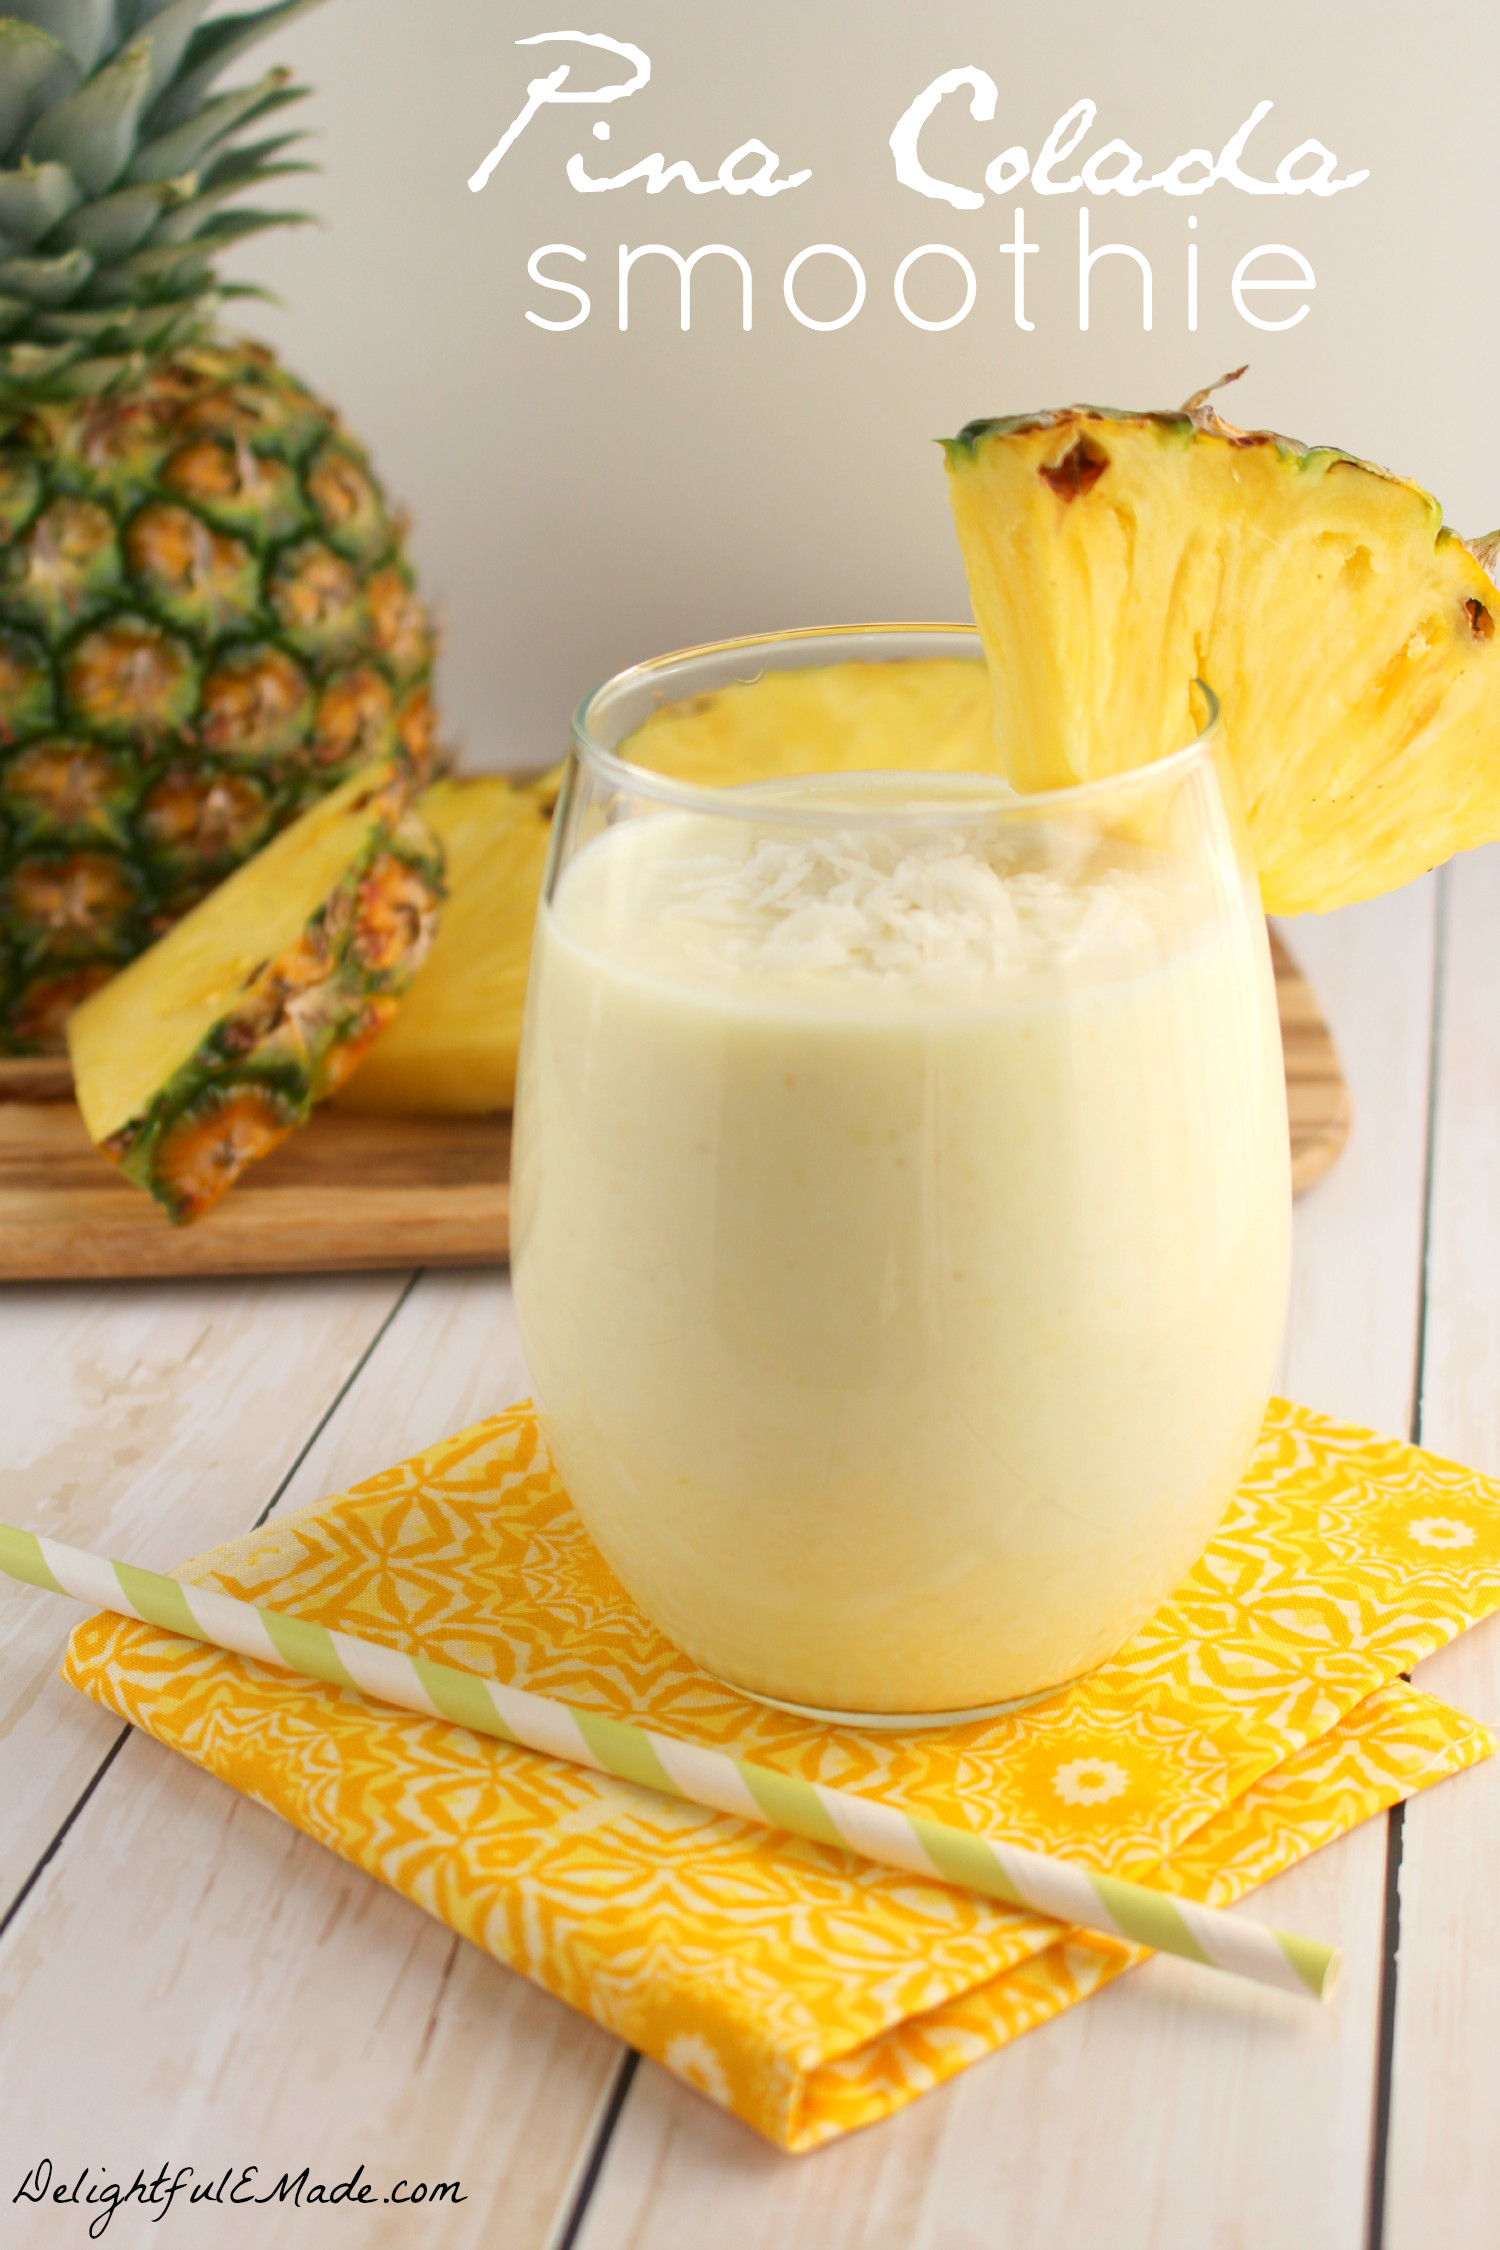 Pina Colada Smoothies Recipe  Pina Colada Smoothie Two Ways Breakfast or Cocktail